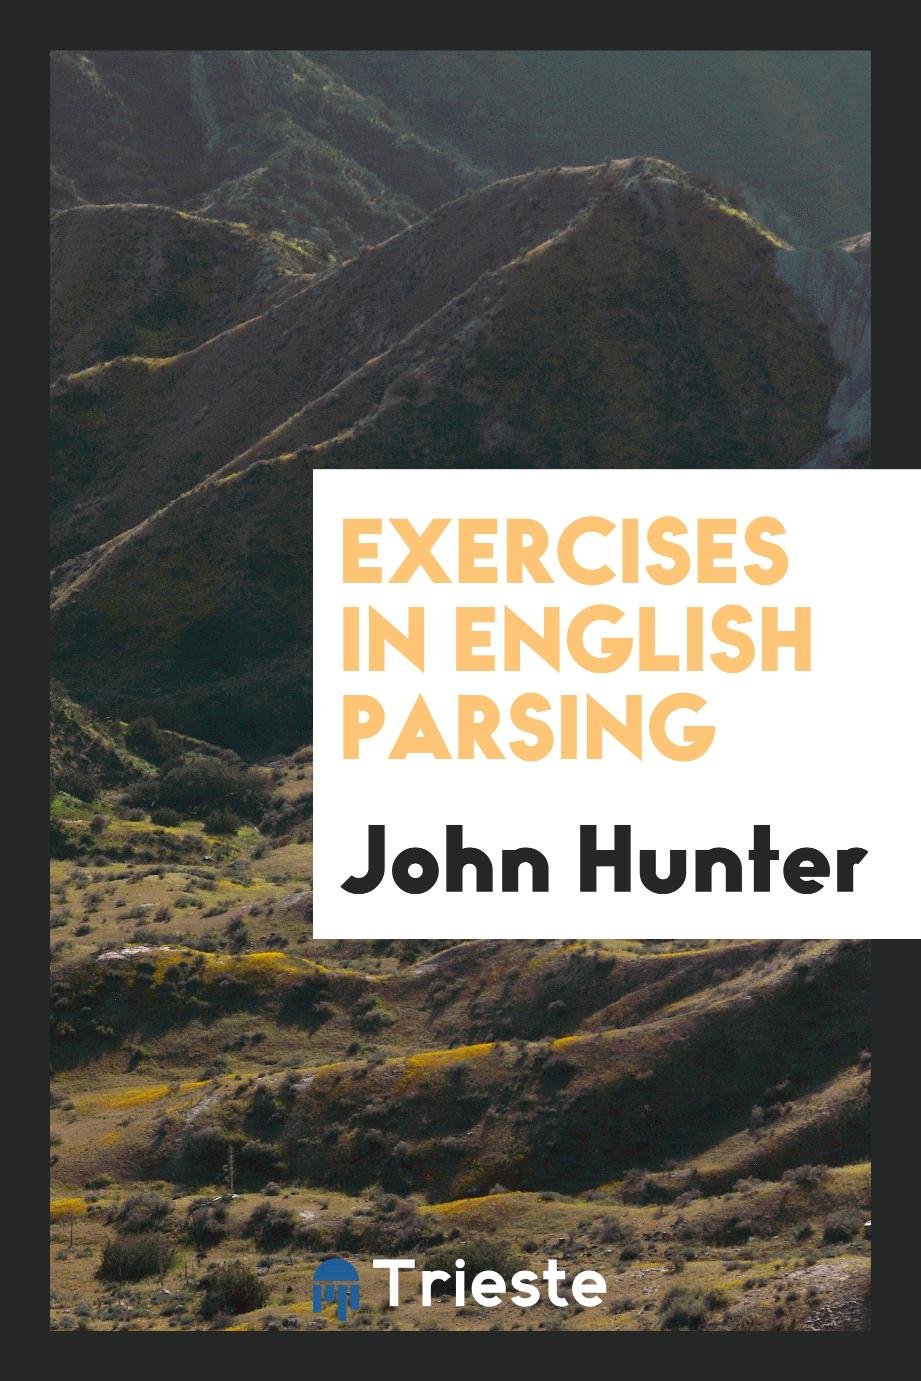 Exercises in English parsing